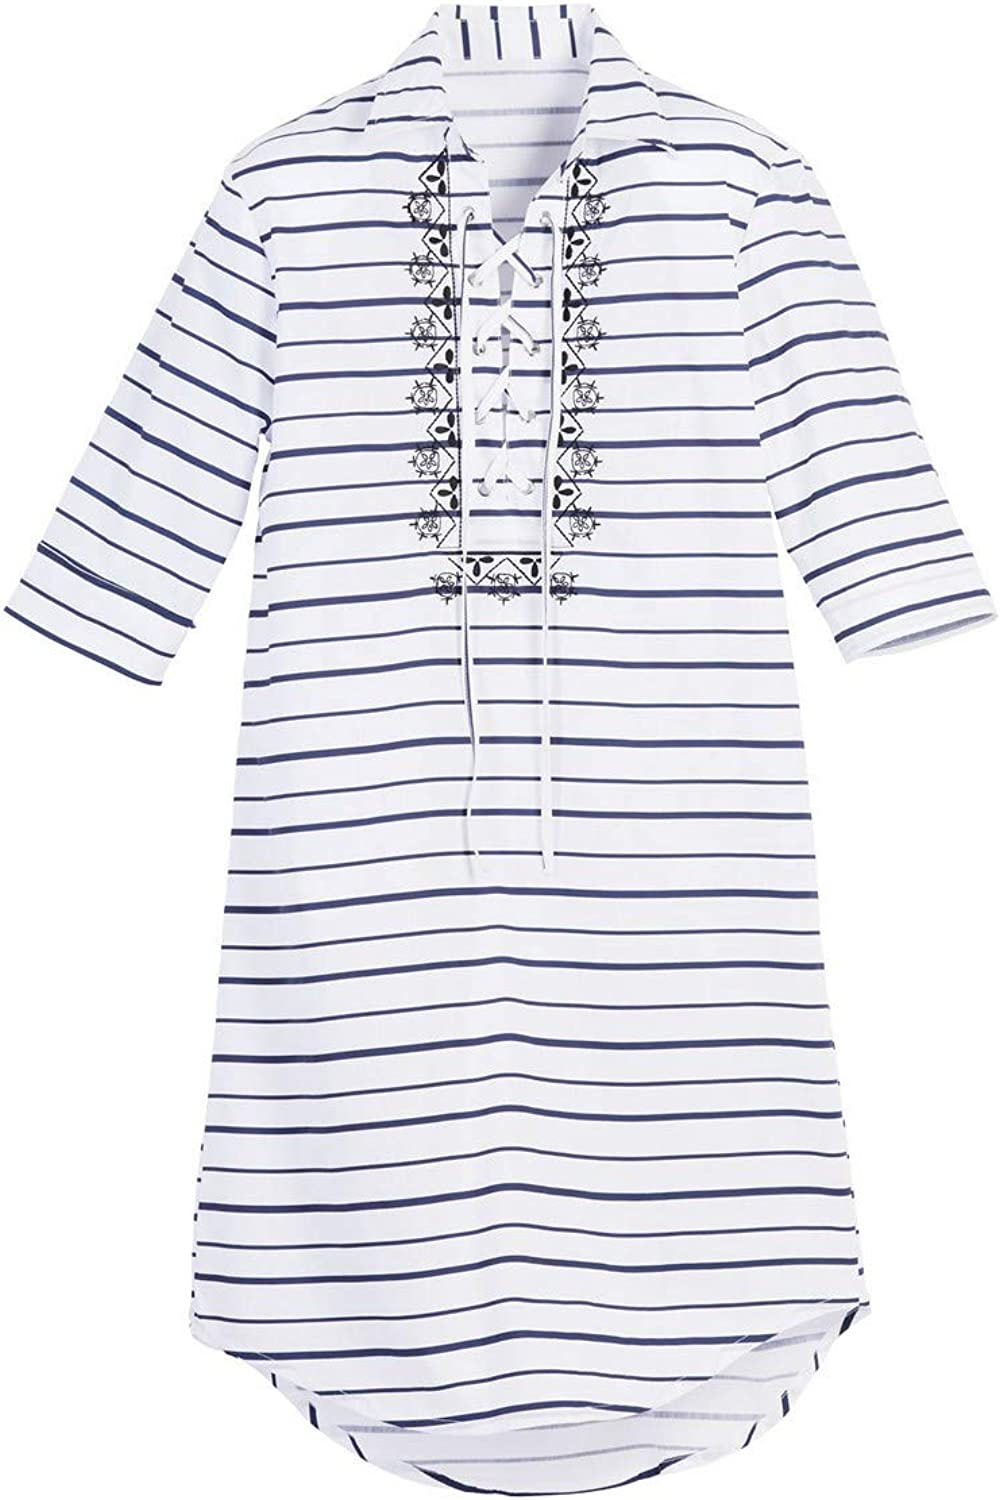 Beachcombers Women Cotton Polyester Striped Caftan Cover Up White Large